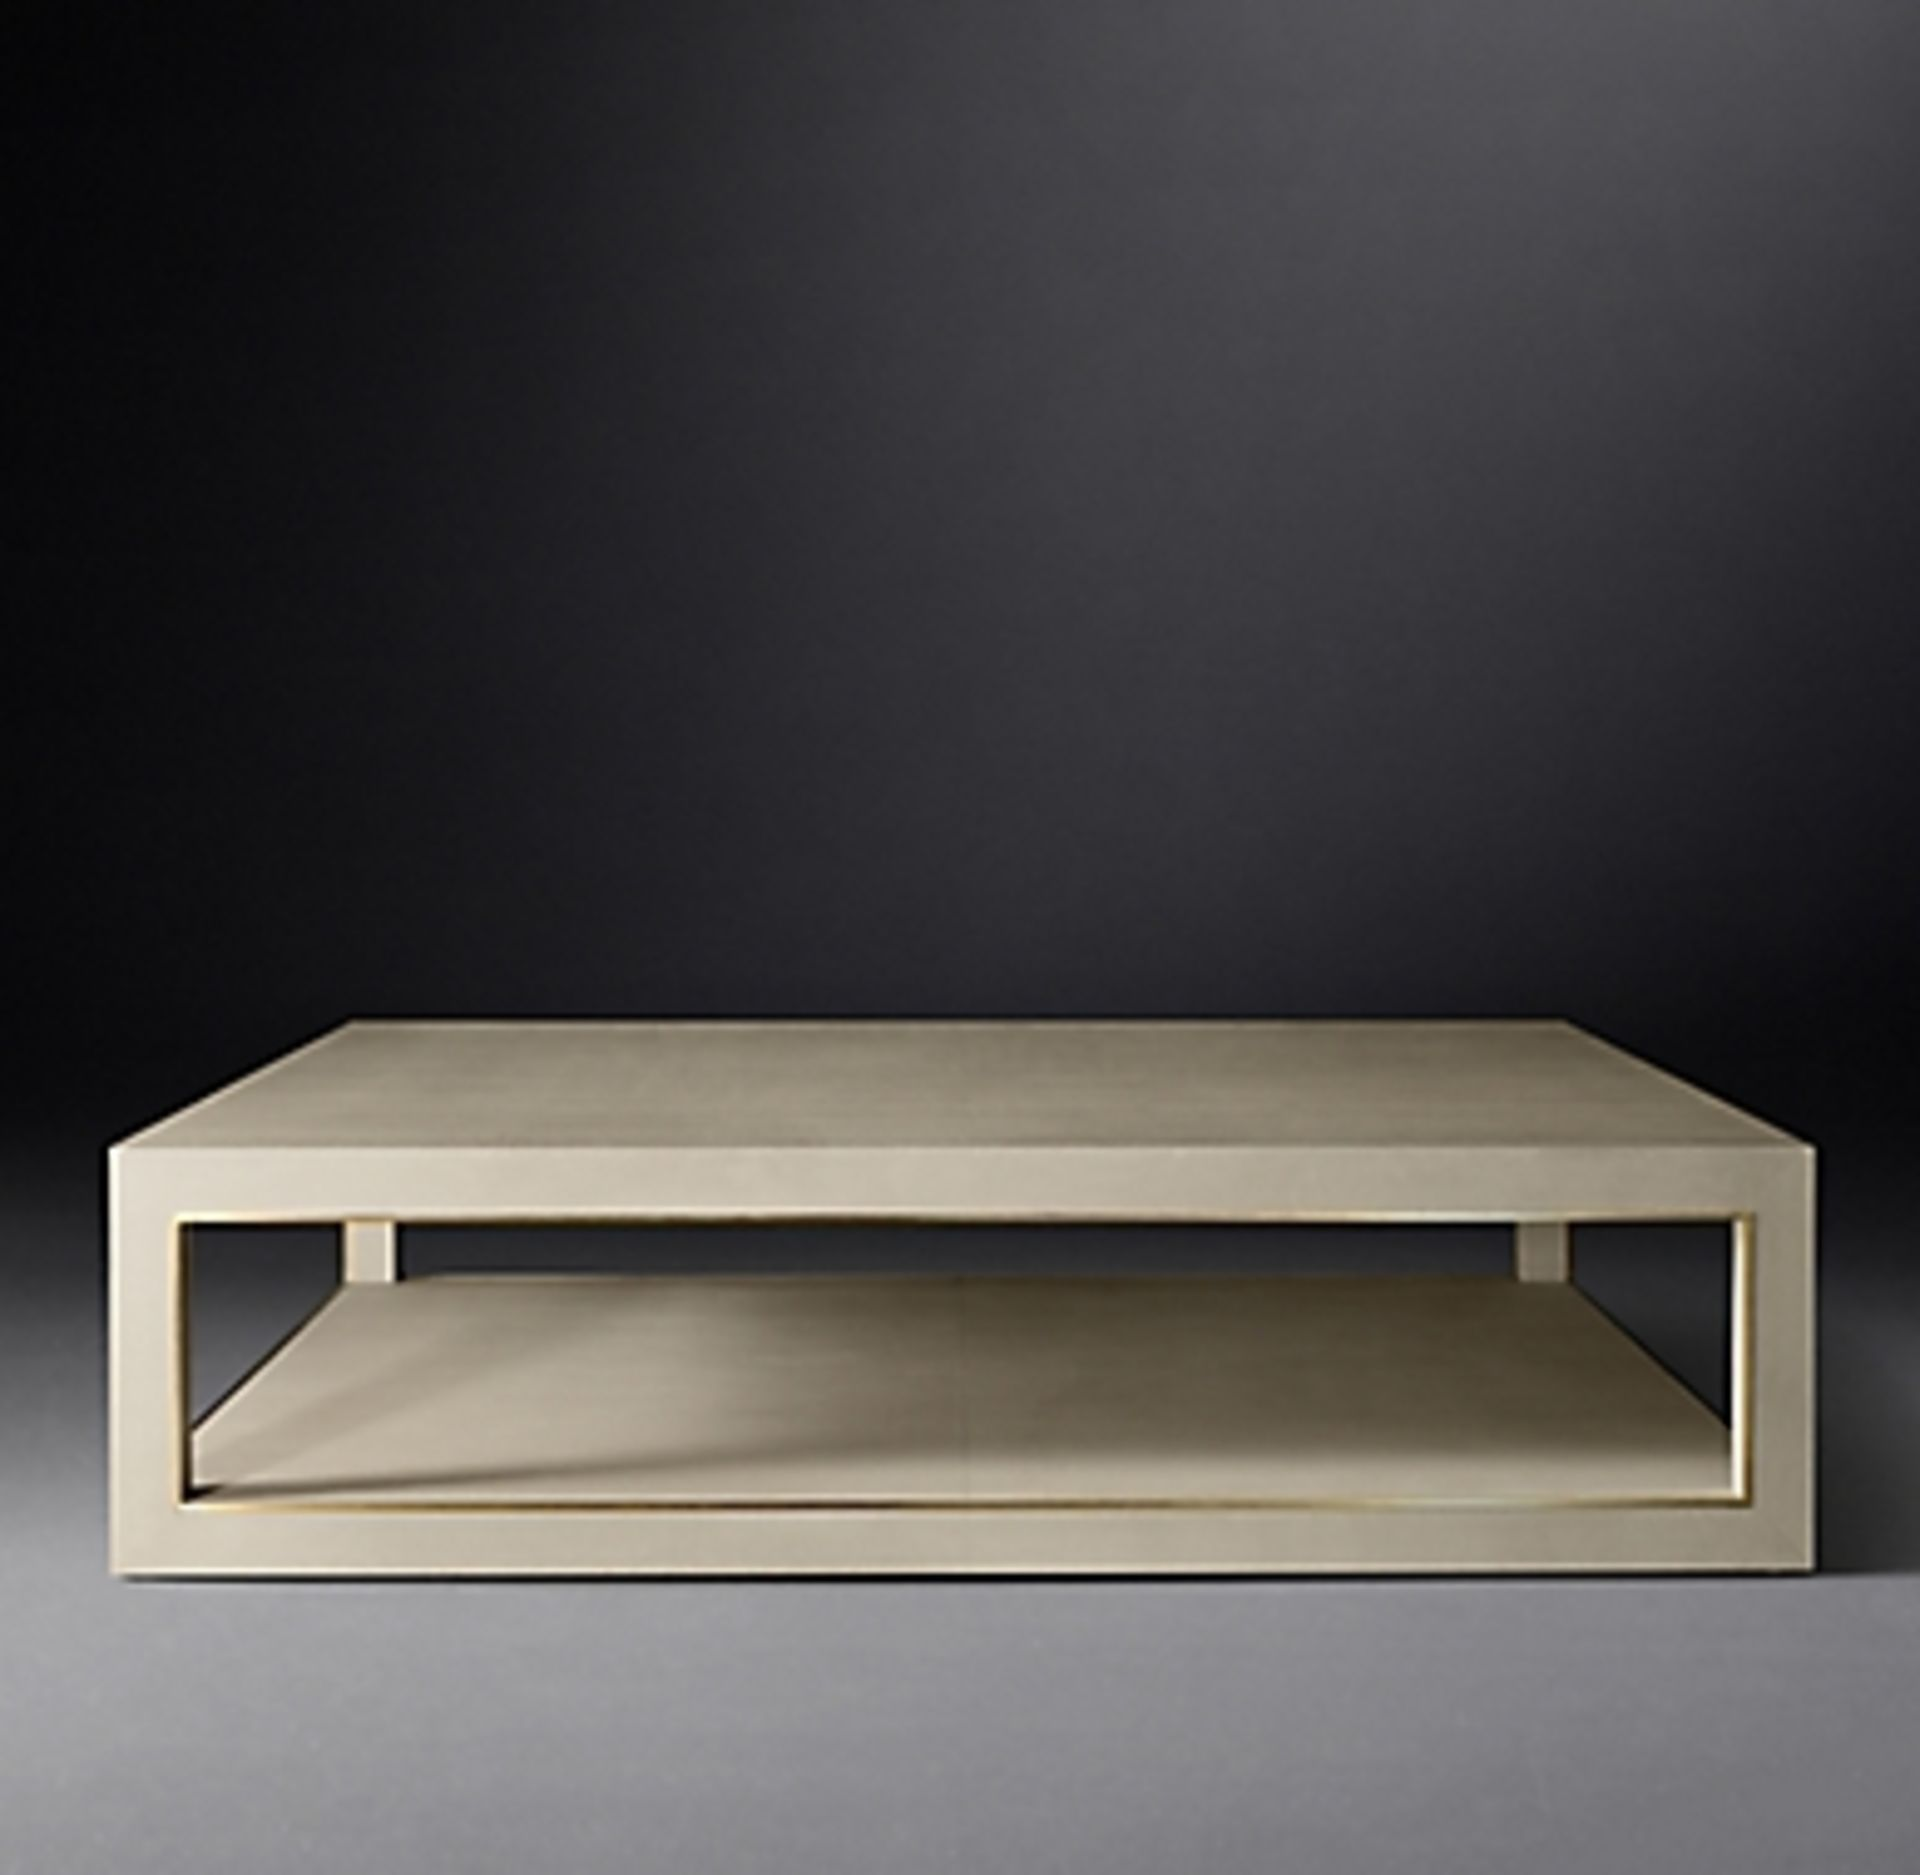 Cela Cream White 55 Shagreen Rectangular Coffee Table Crafted Of Shagreen Embossed Leather With